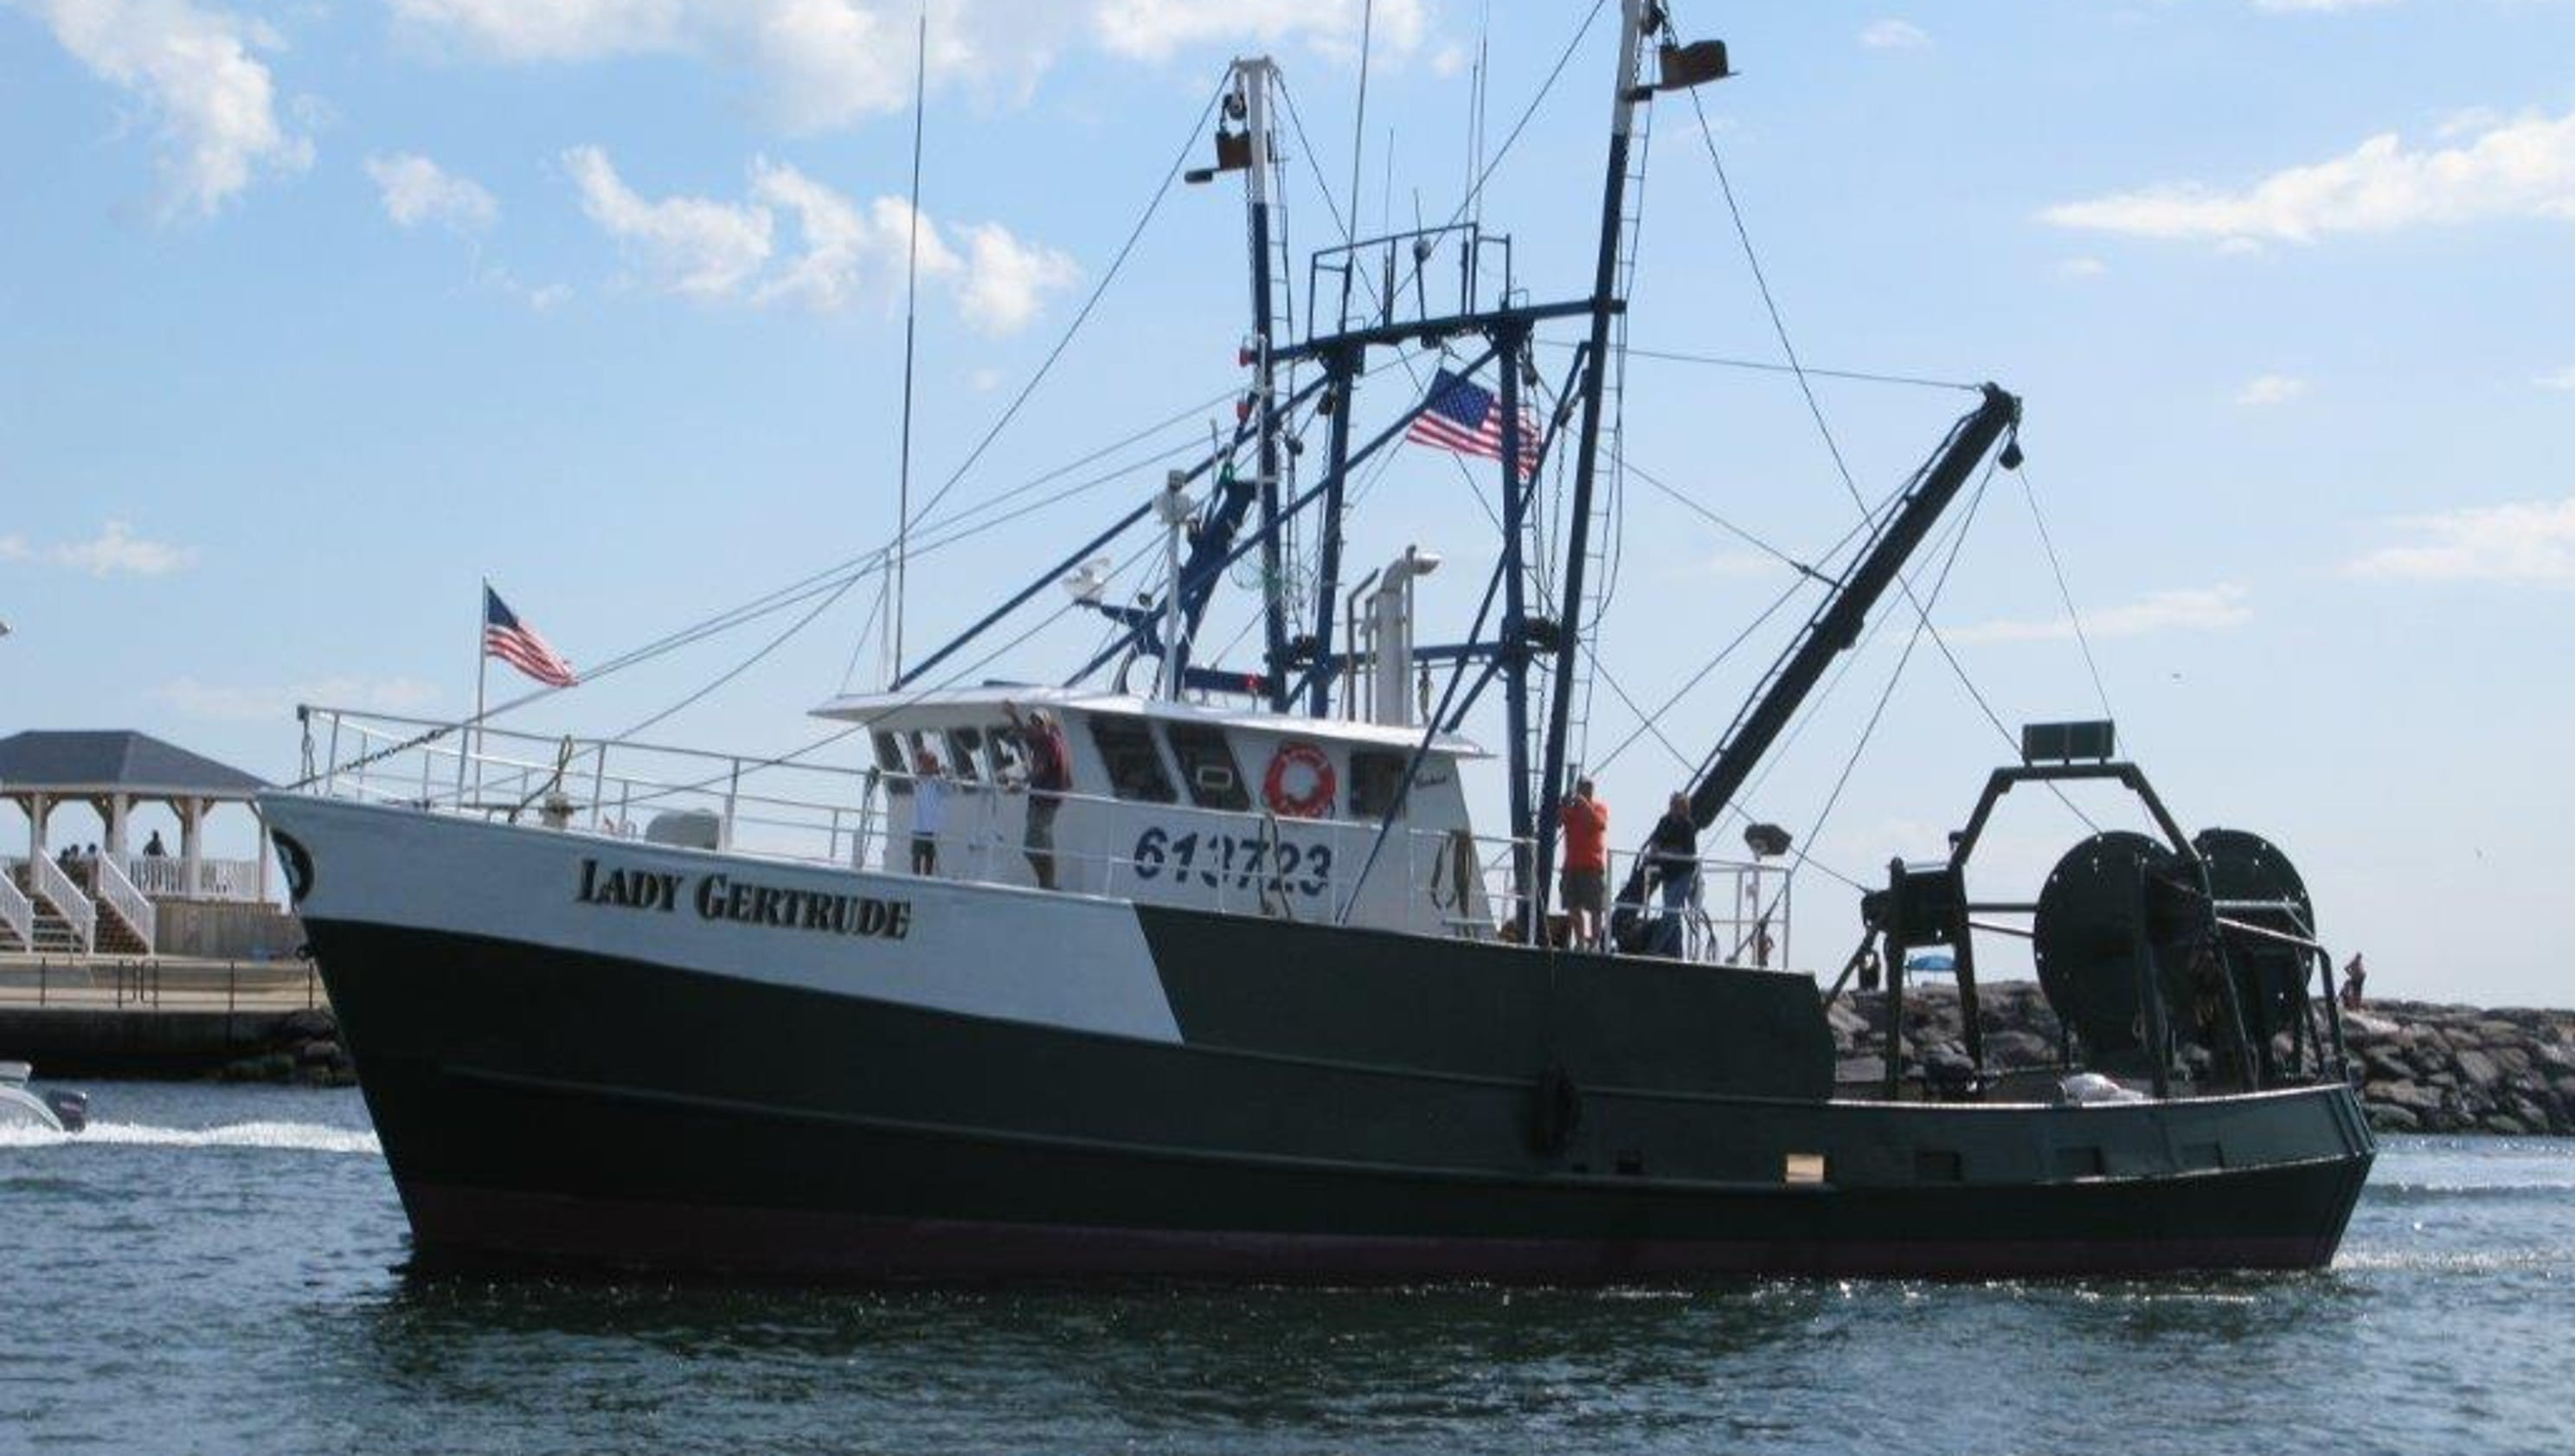 Fishing crew rescued from sinking boat off nj coast for Fishing in nj